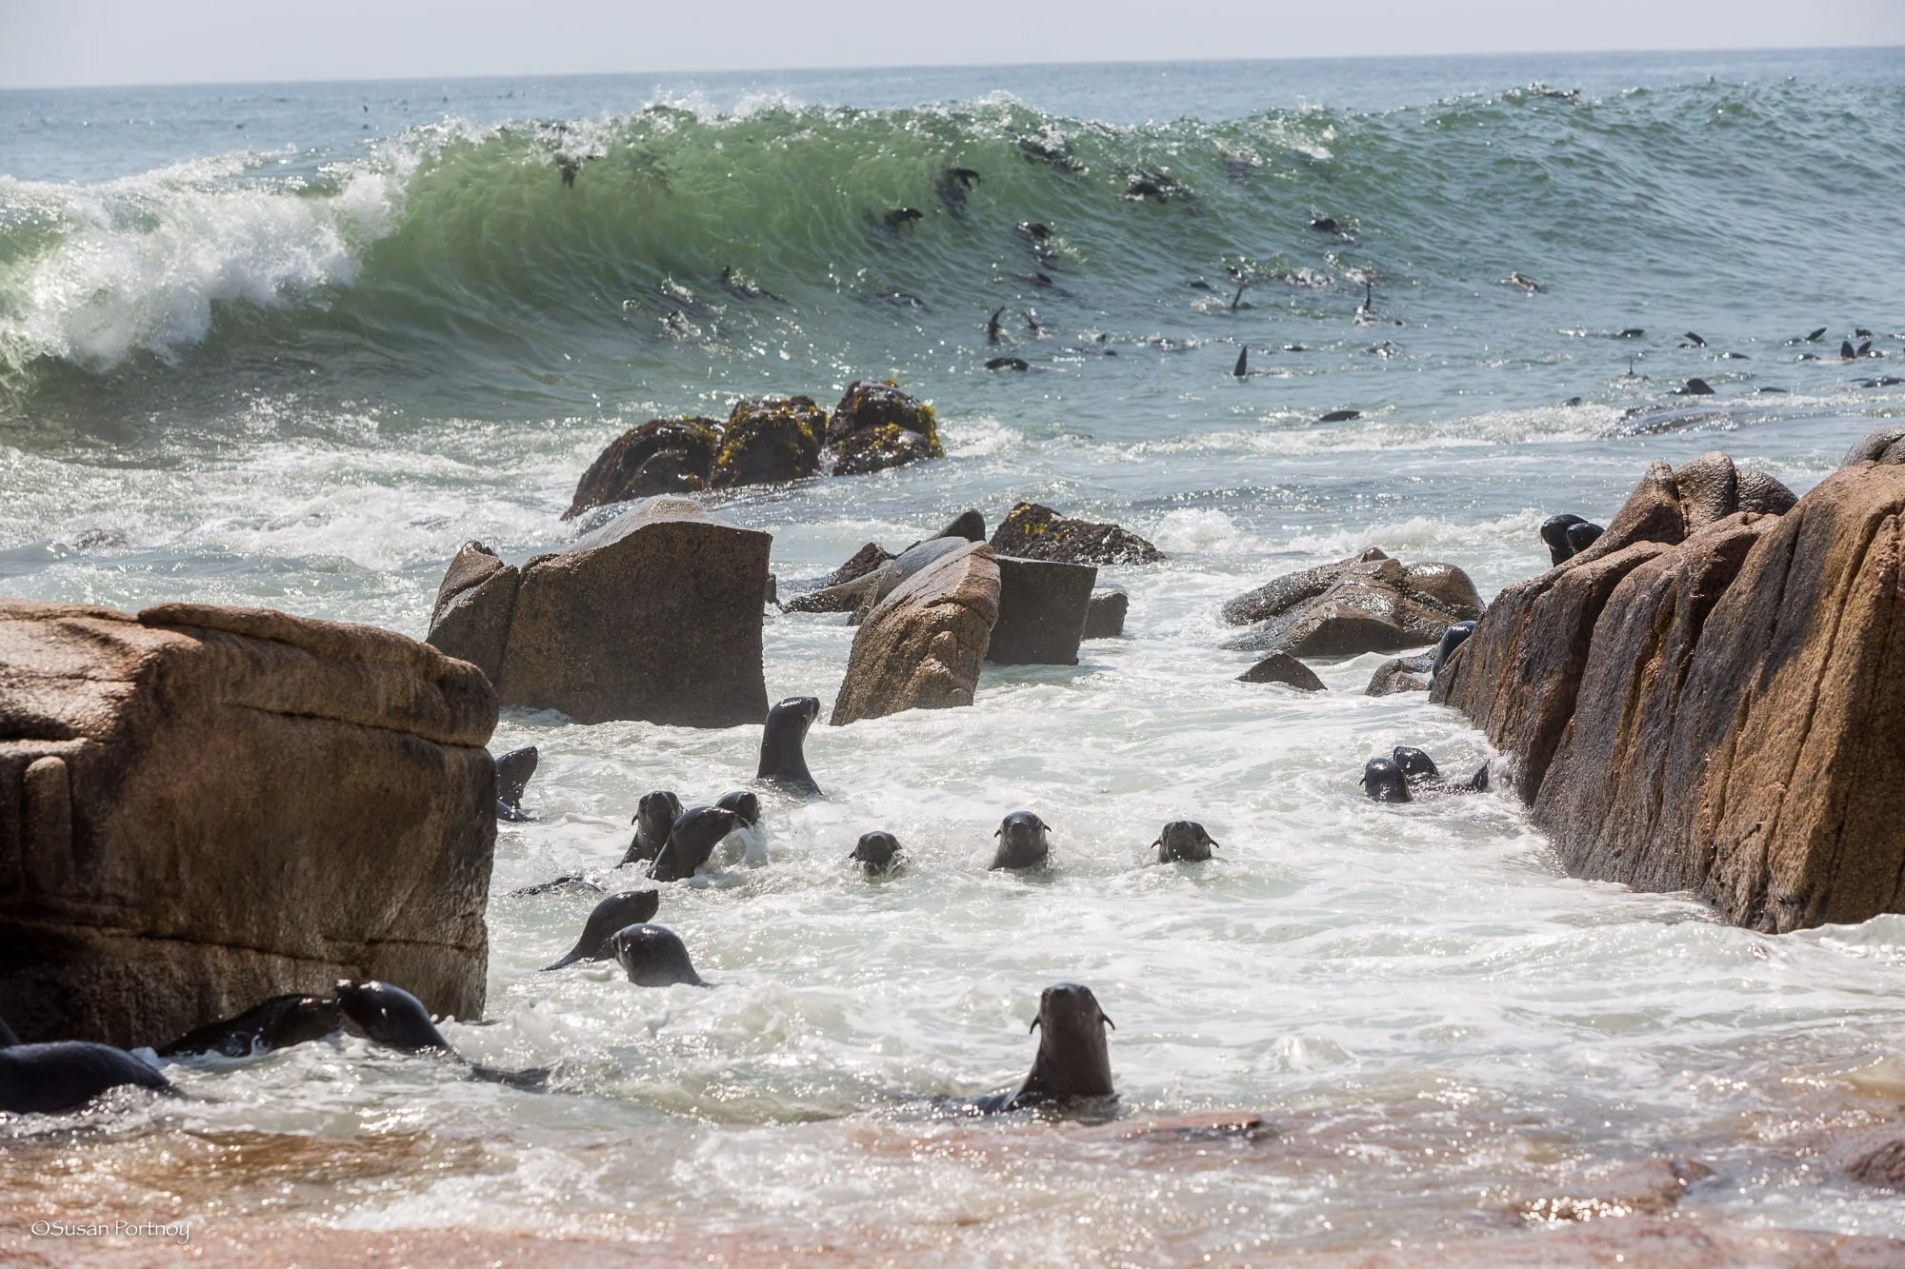 Seals frolic in the water on Namibia's Skeleton Coast